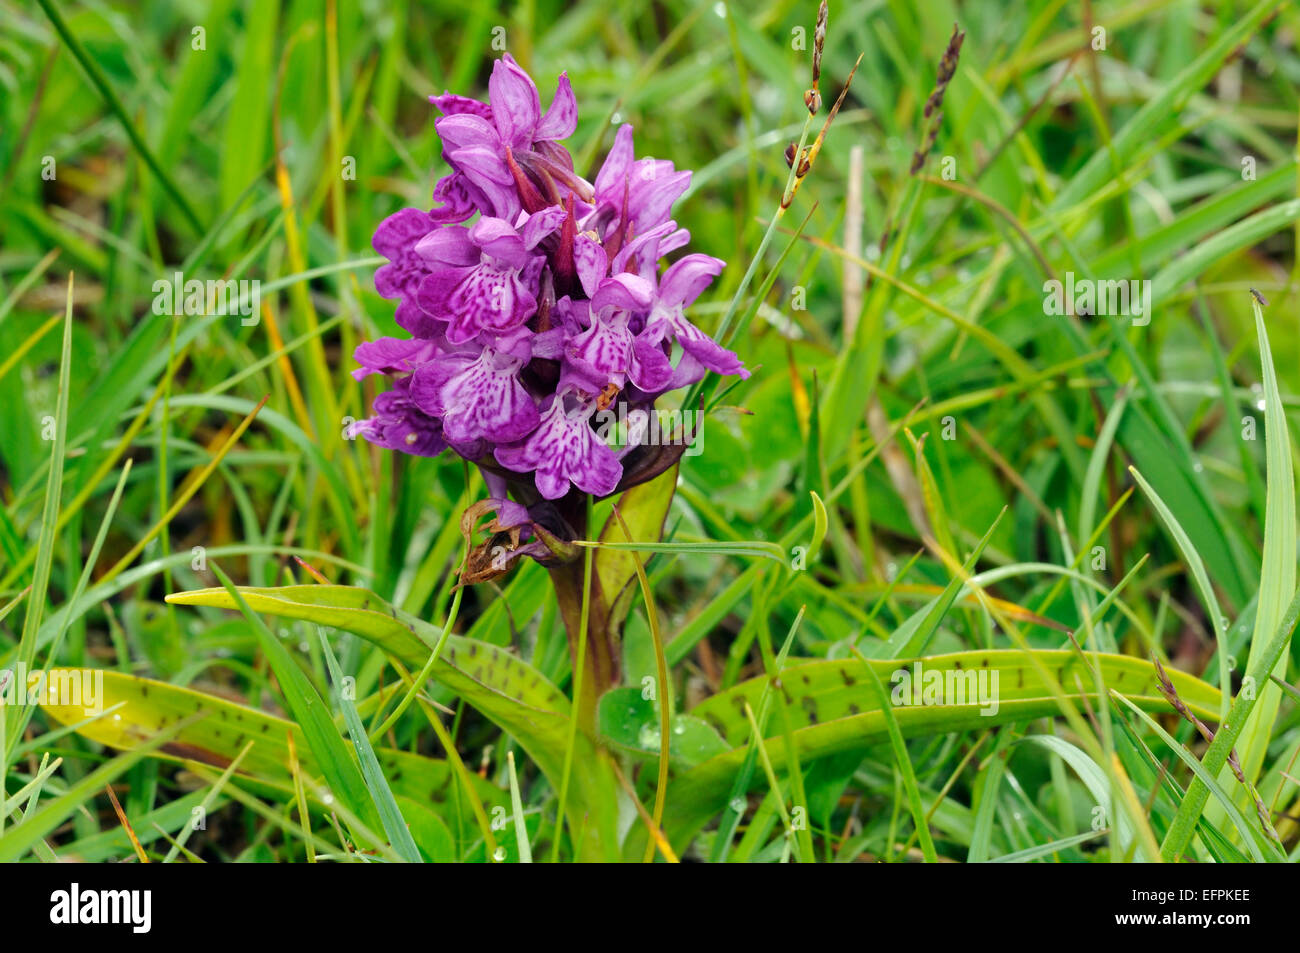 Northern Marsh Orchid - Dactylorhiza purpurella cambrensis Growing on Machair grassland Spotted leaf form, whole - Stock Image